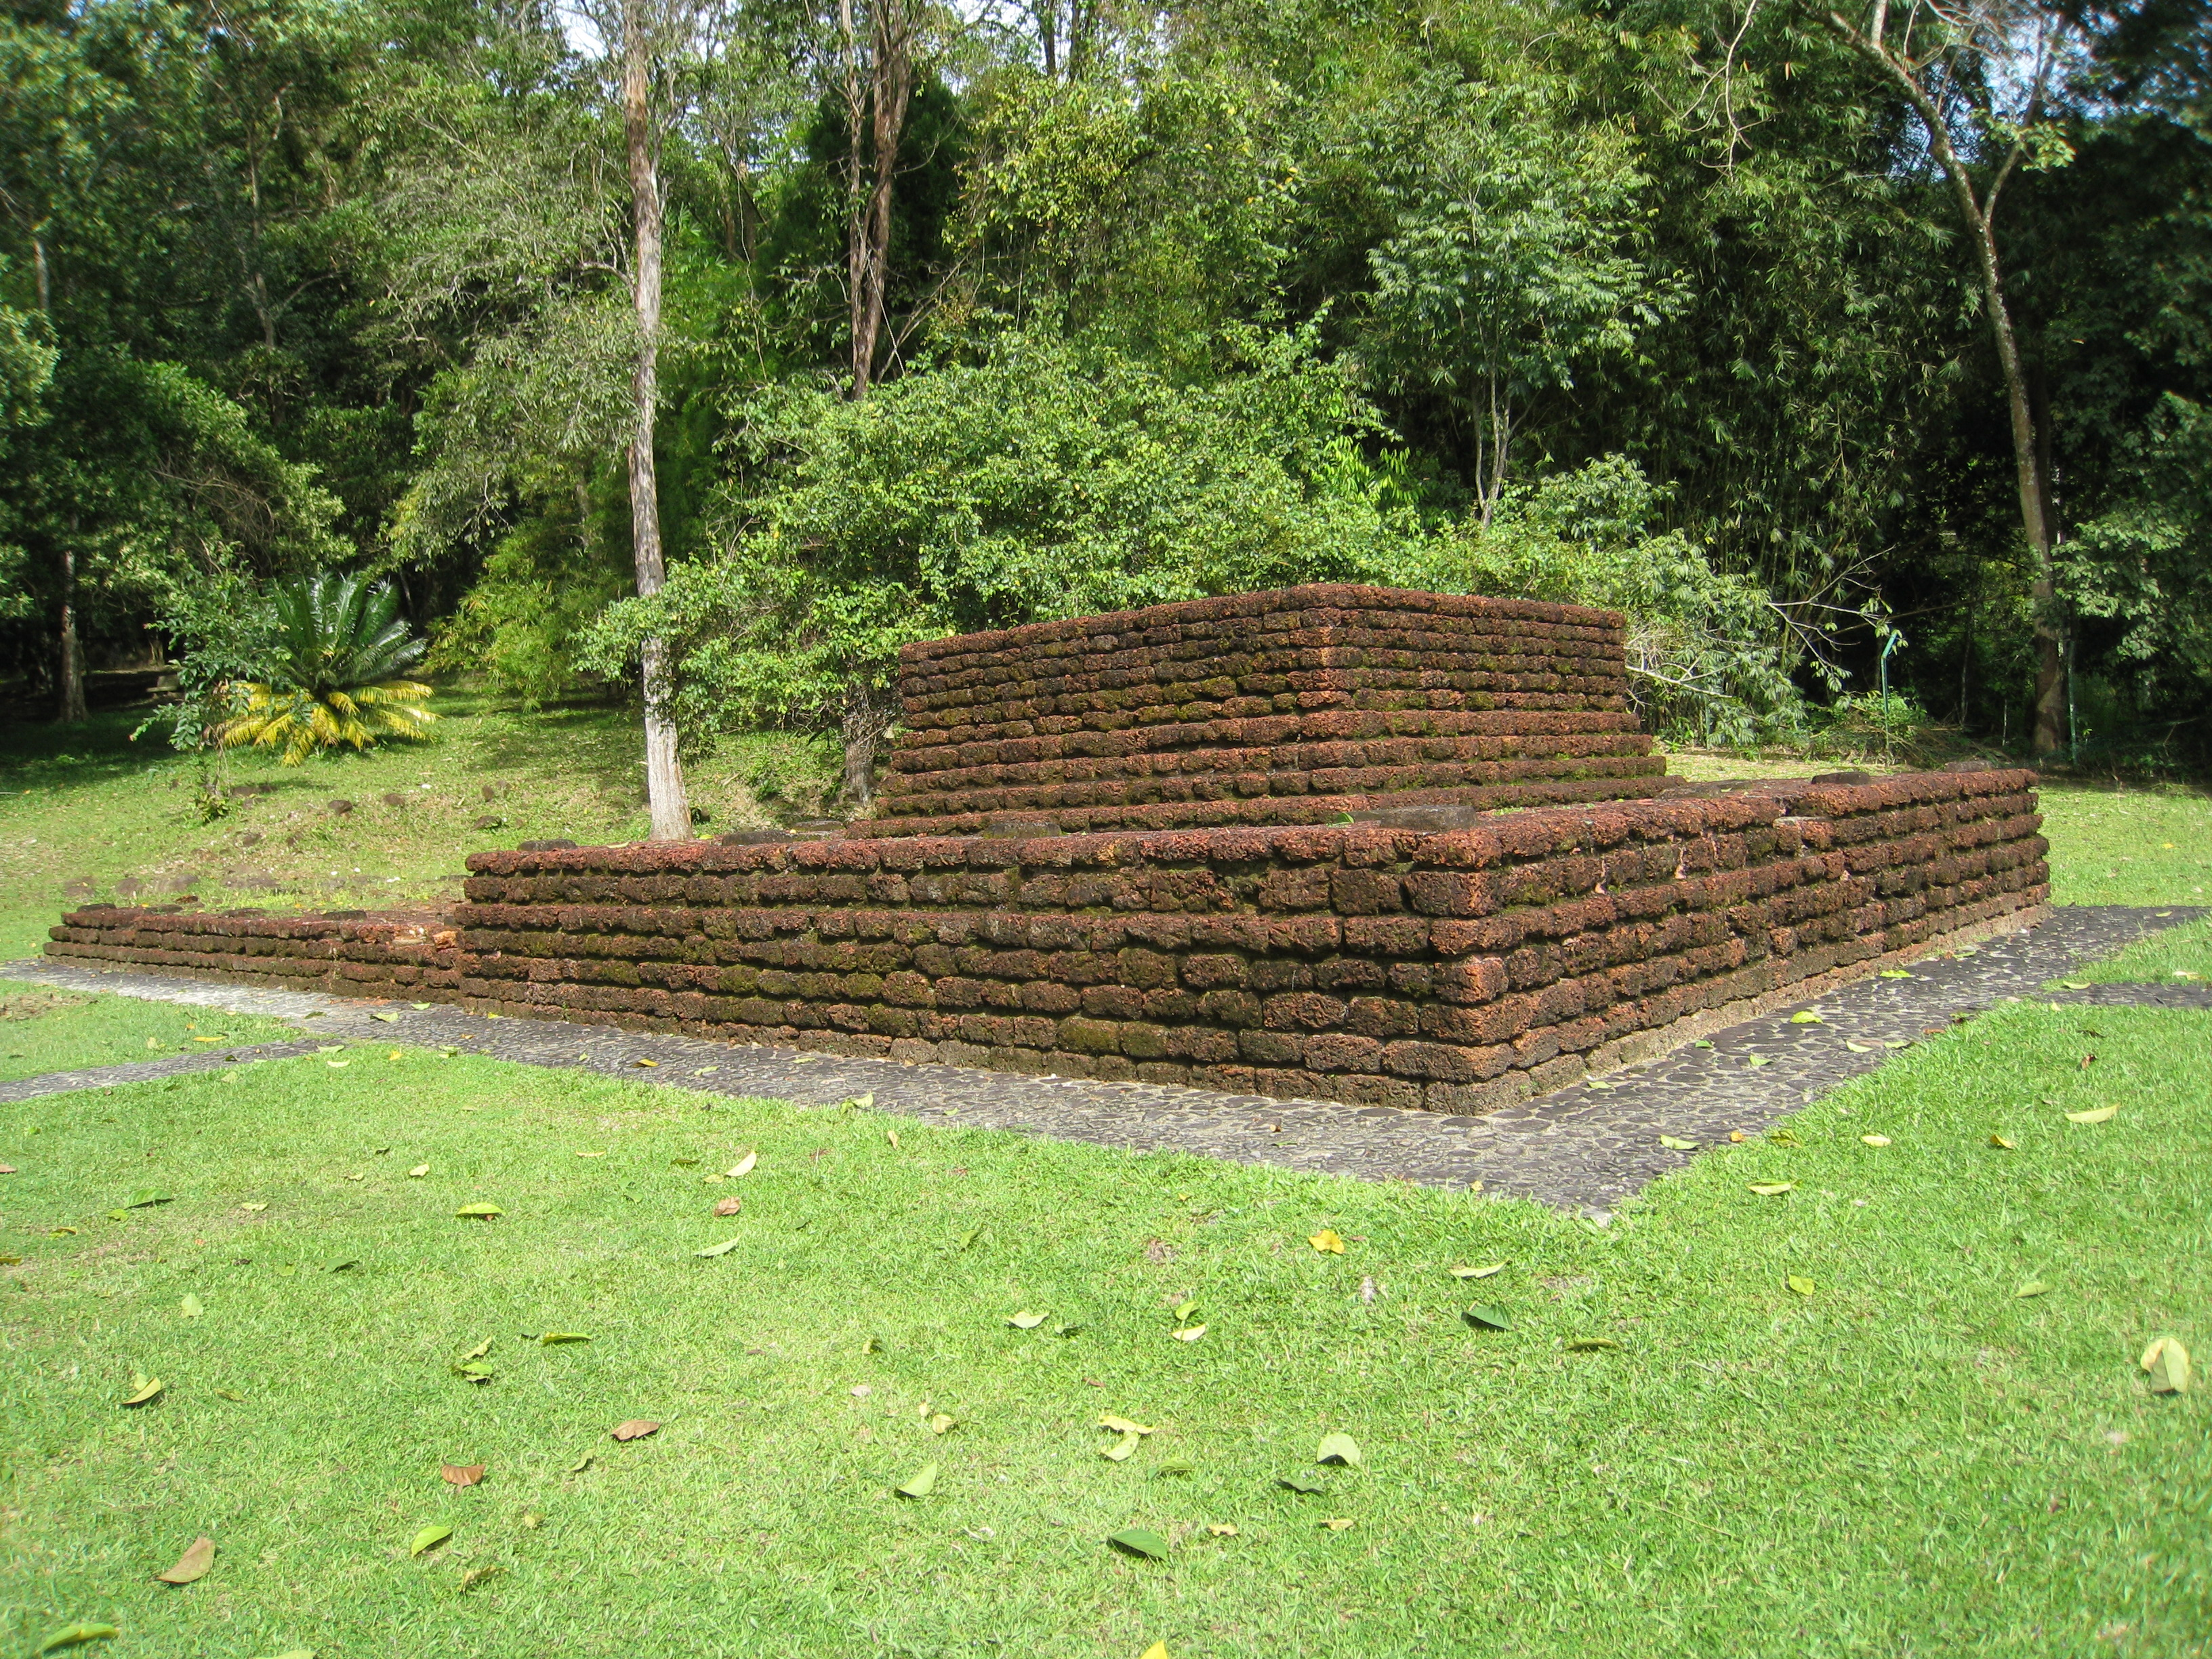 https://upload.wikimedia.org/wikipedia/commons/1/1a/006_Bujang_Valley_Candi.jpg